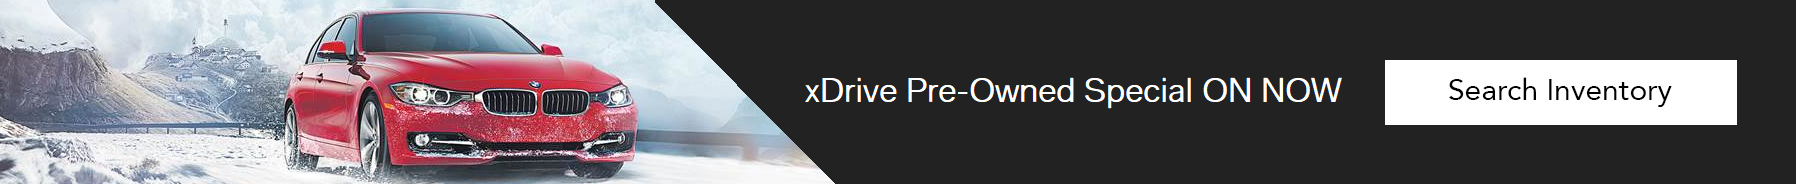 xDrive Pre-Owned Specials Slide